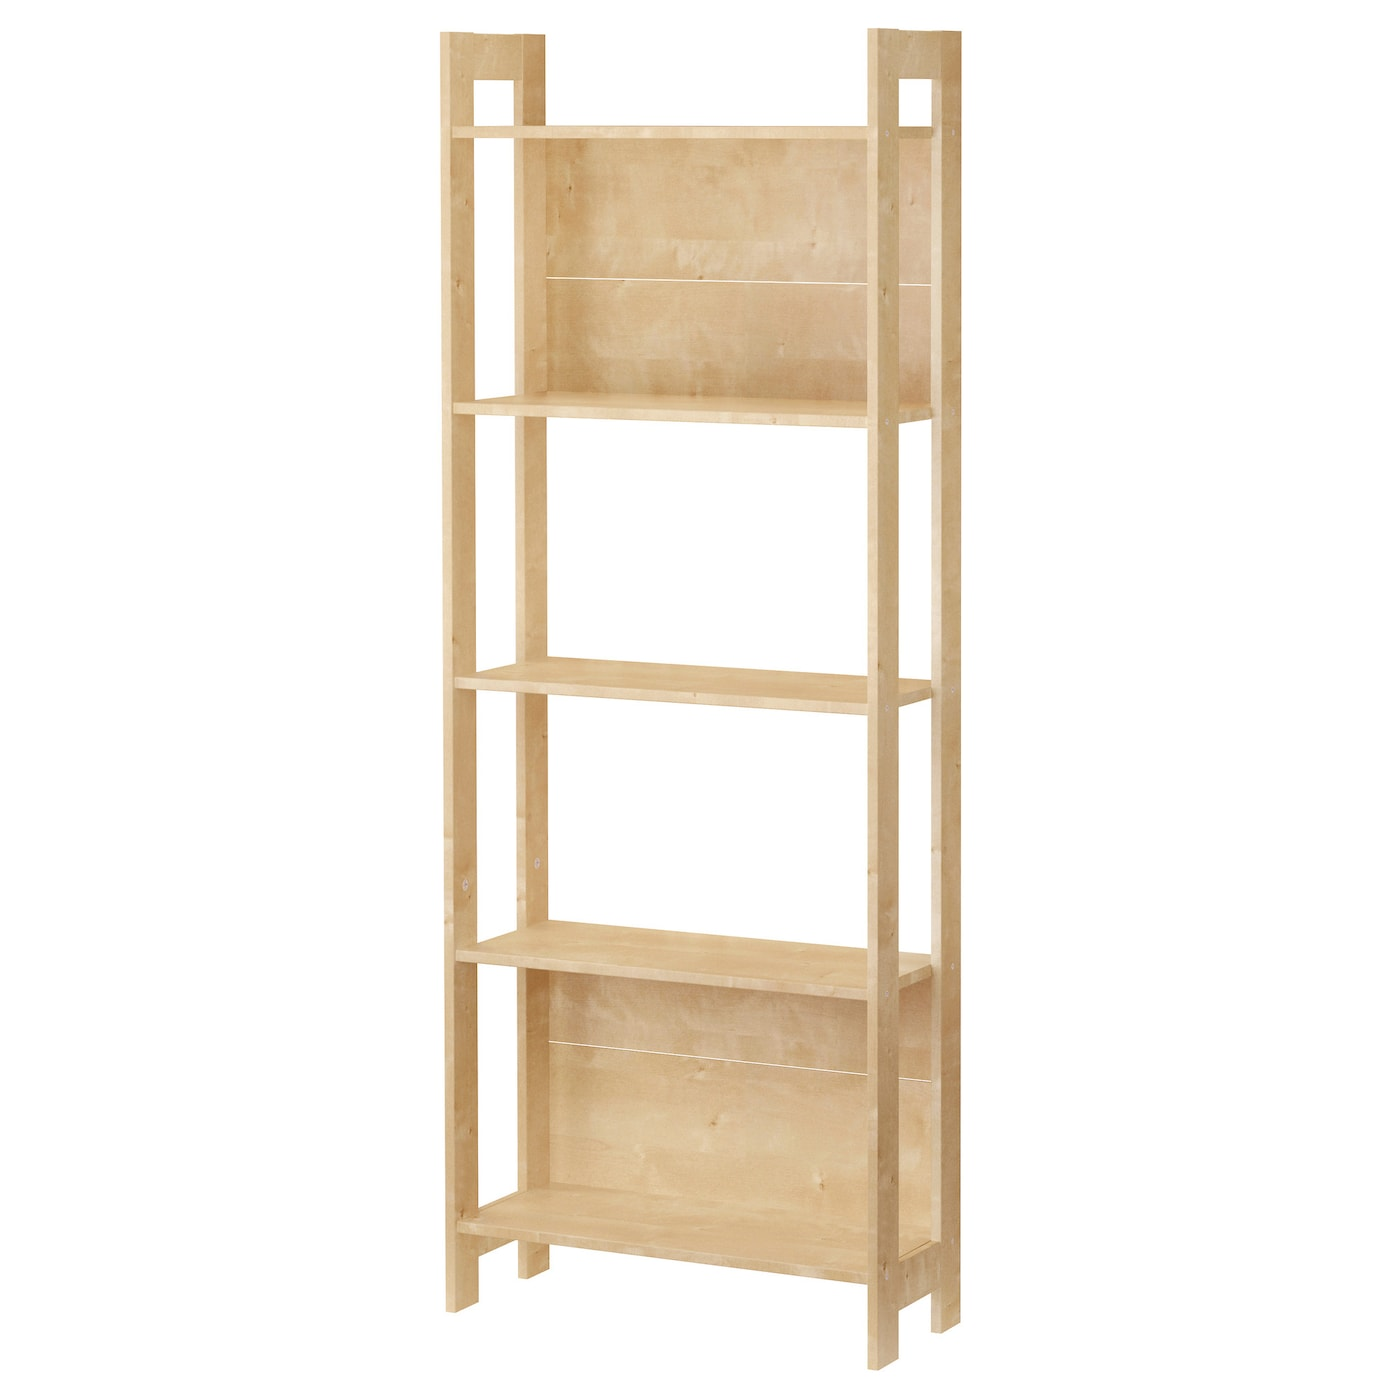 gb unit en kallax furniture storage bookcases bookshelf small white ikea shelving products